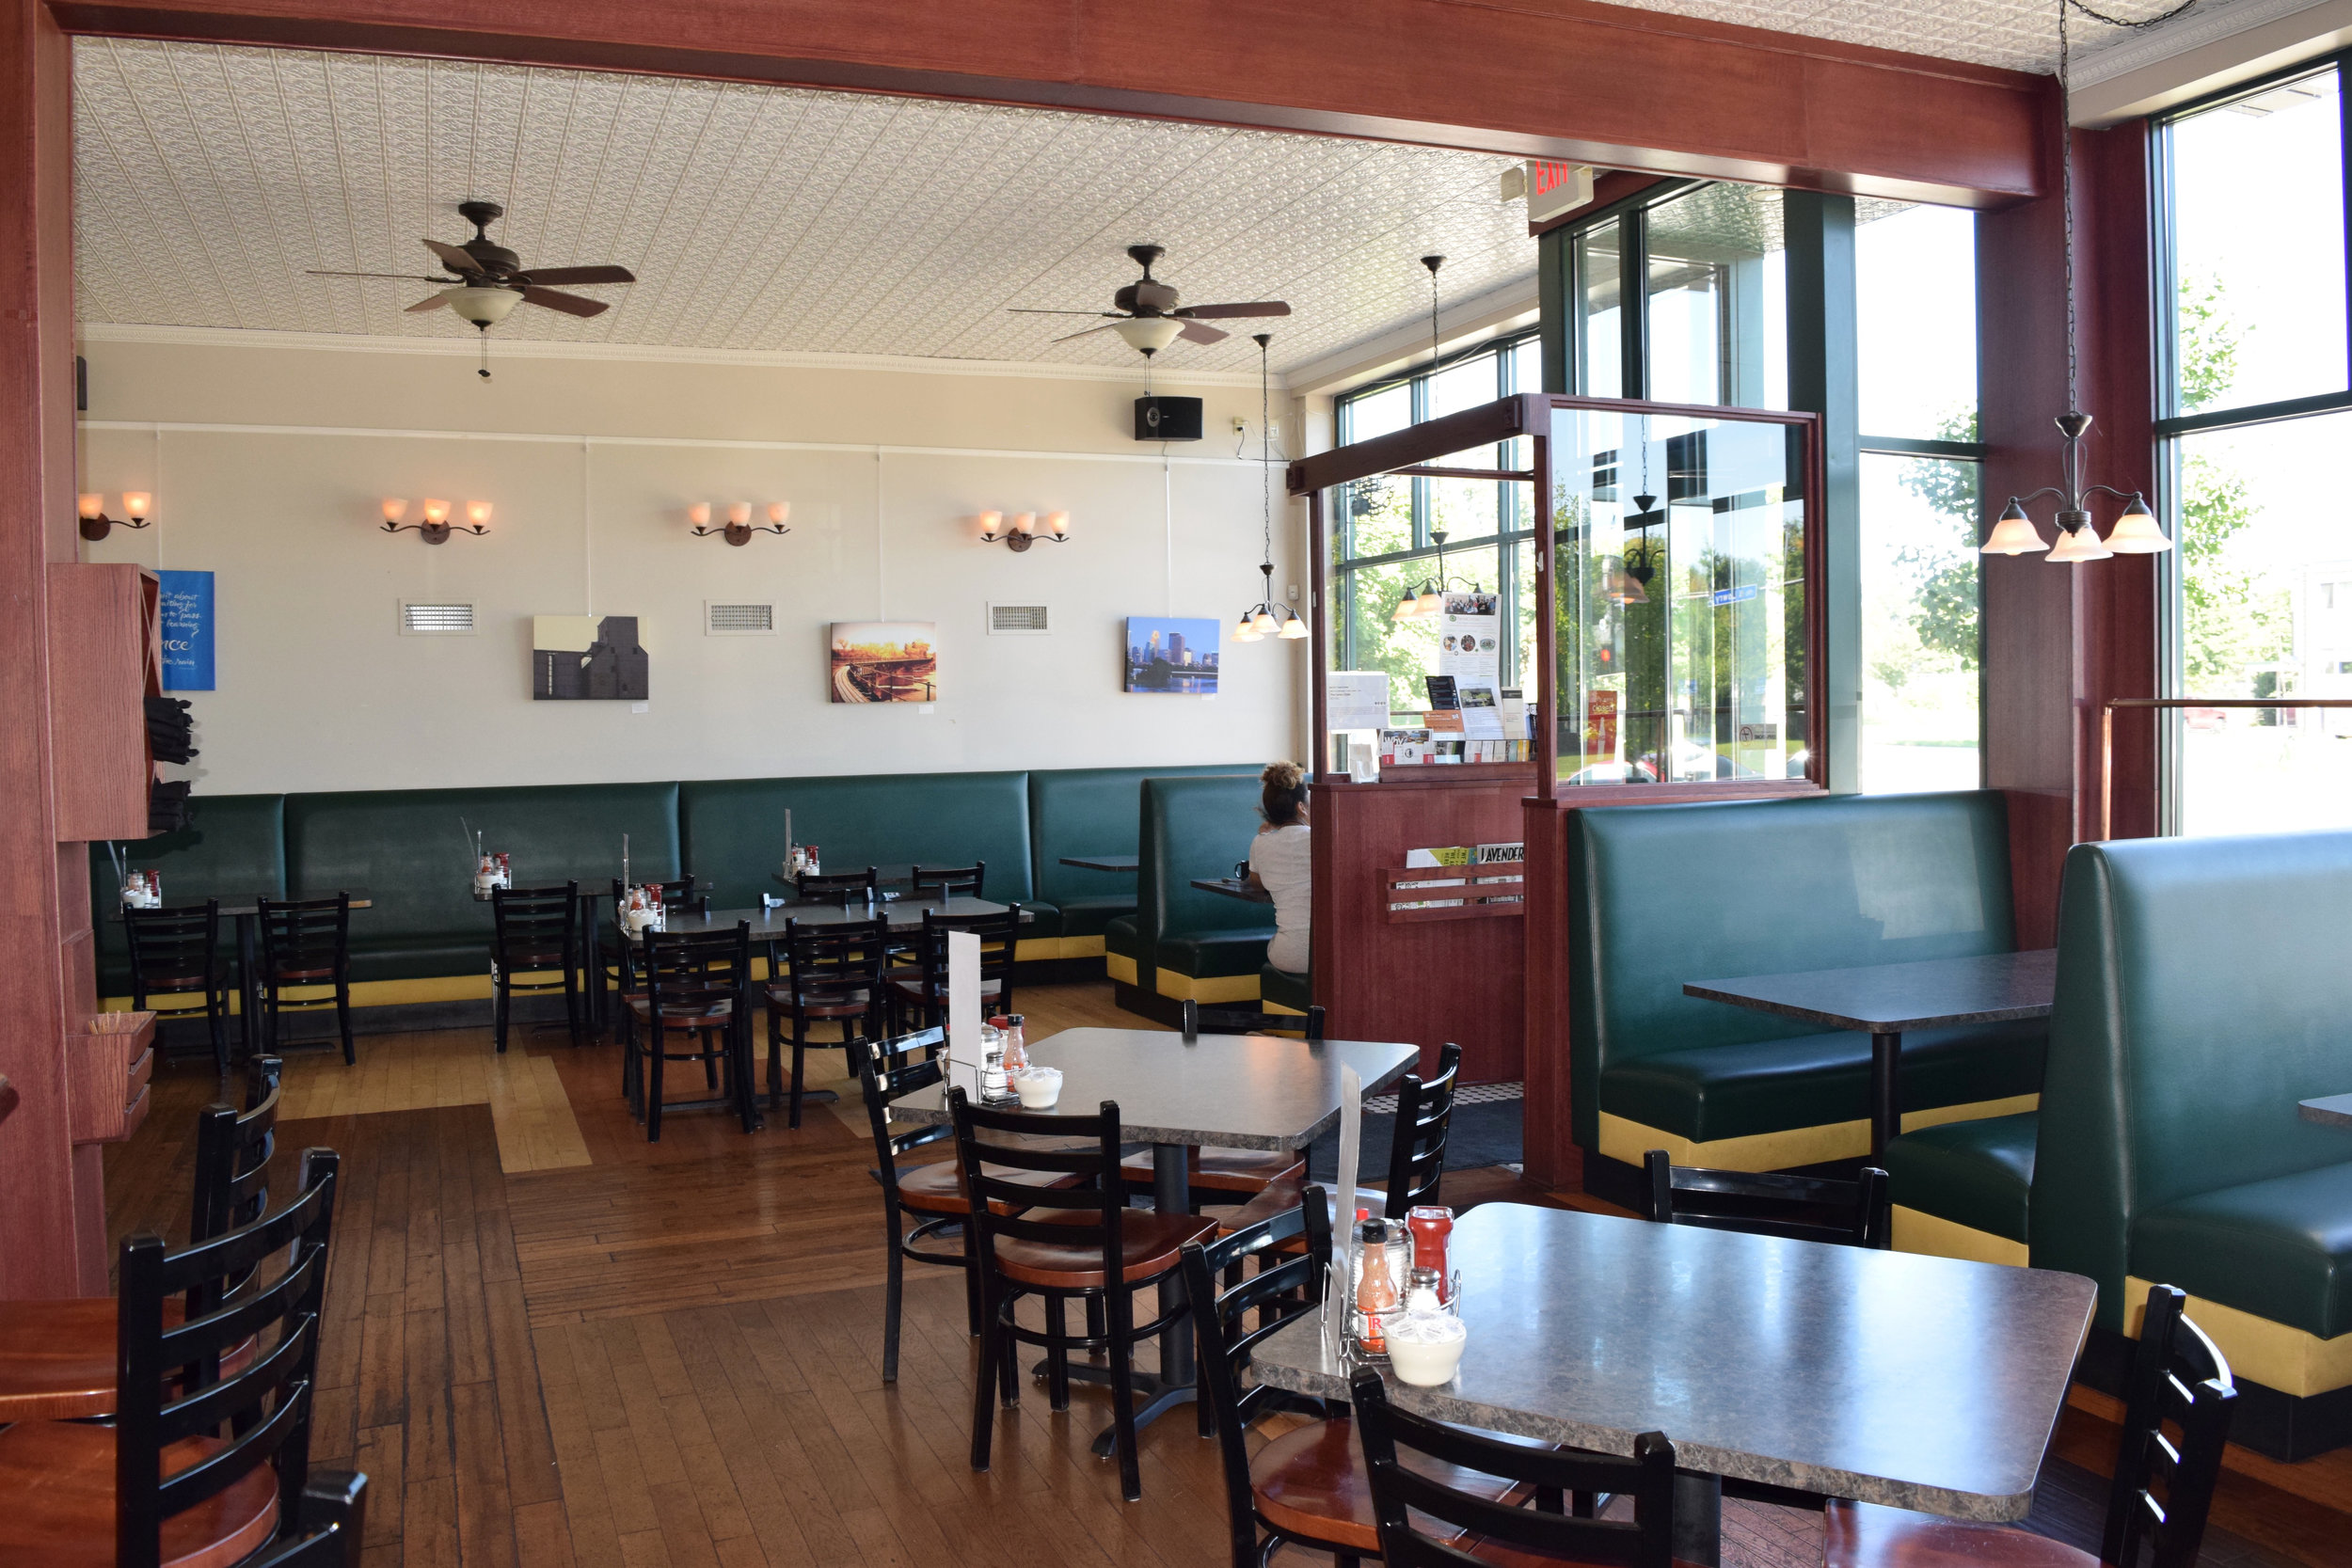 The Lowry Cafe is located at 2207 Lowry Ave. N.